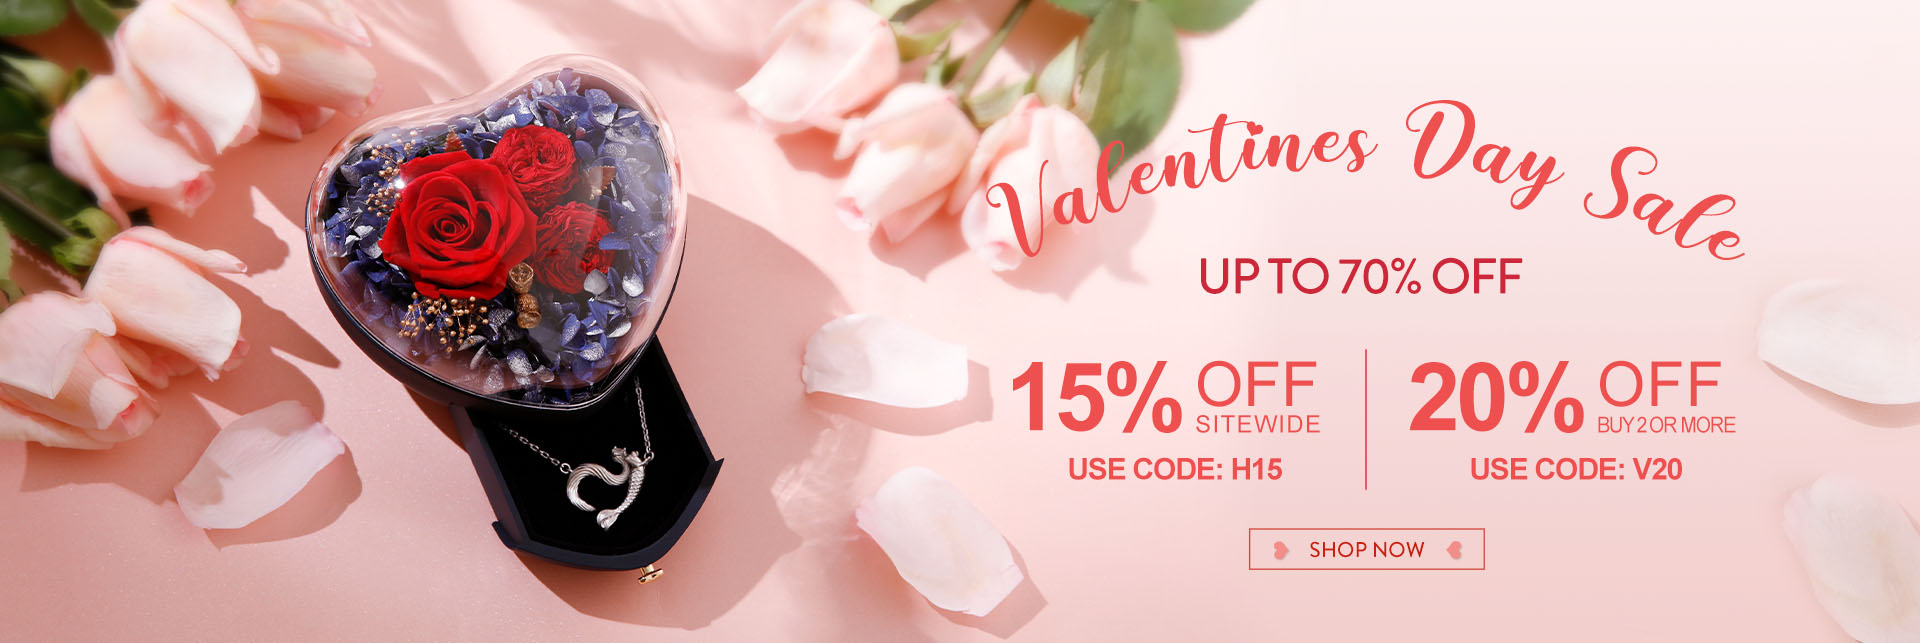 VAlENTINE'S DAY SALE  2021